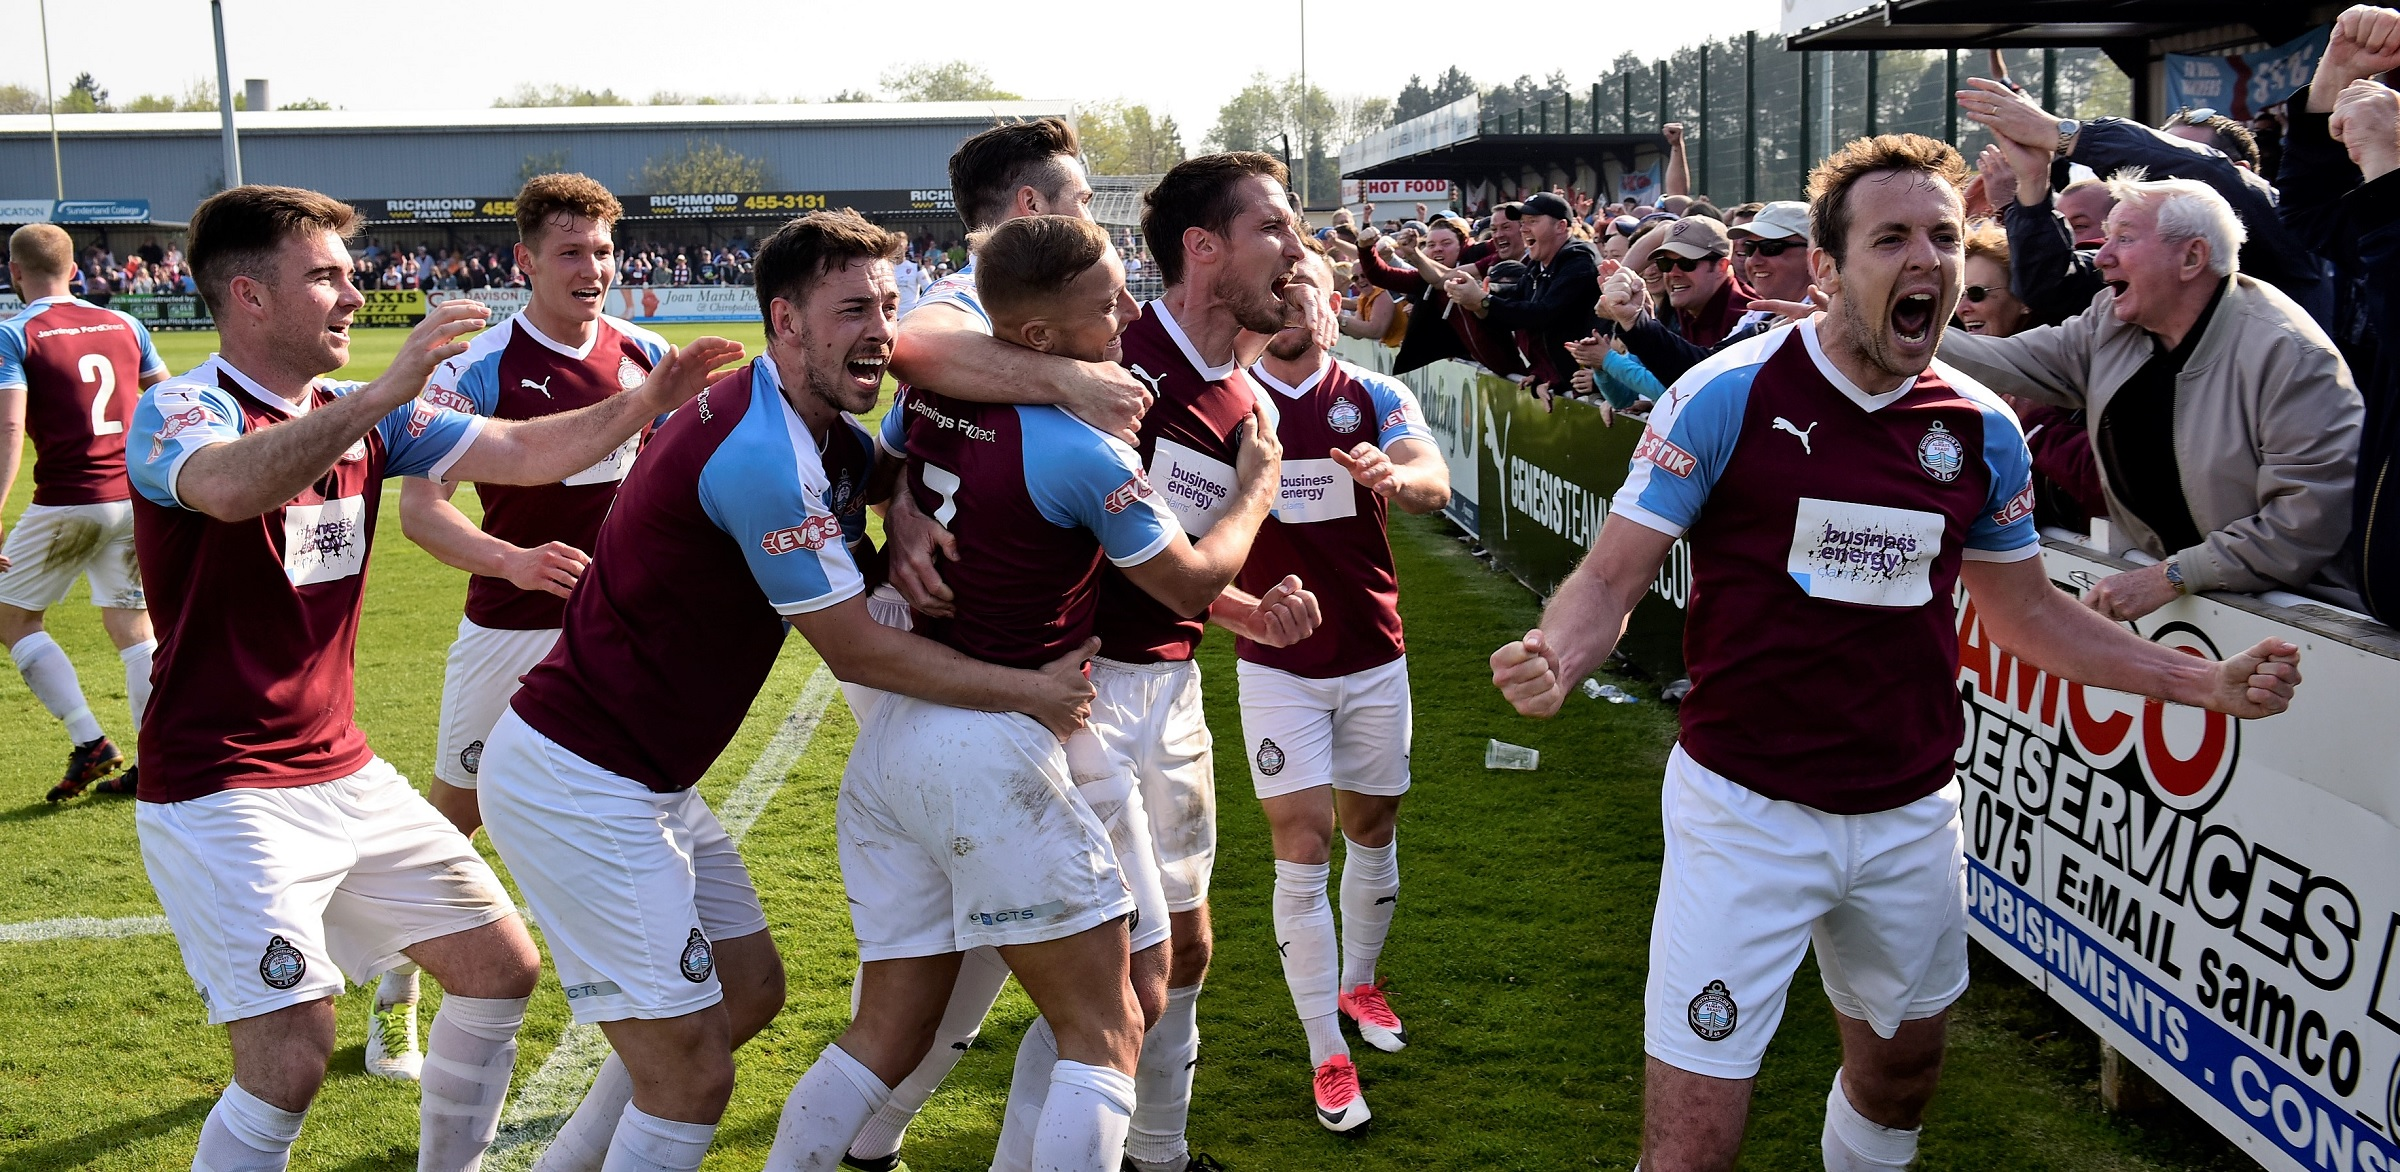 Match Preview: South Shields vs Buxton, Play-Off Semi-Final